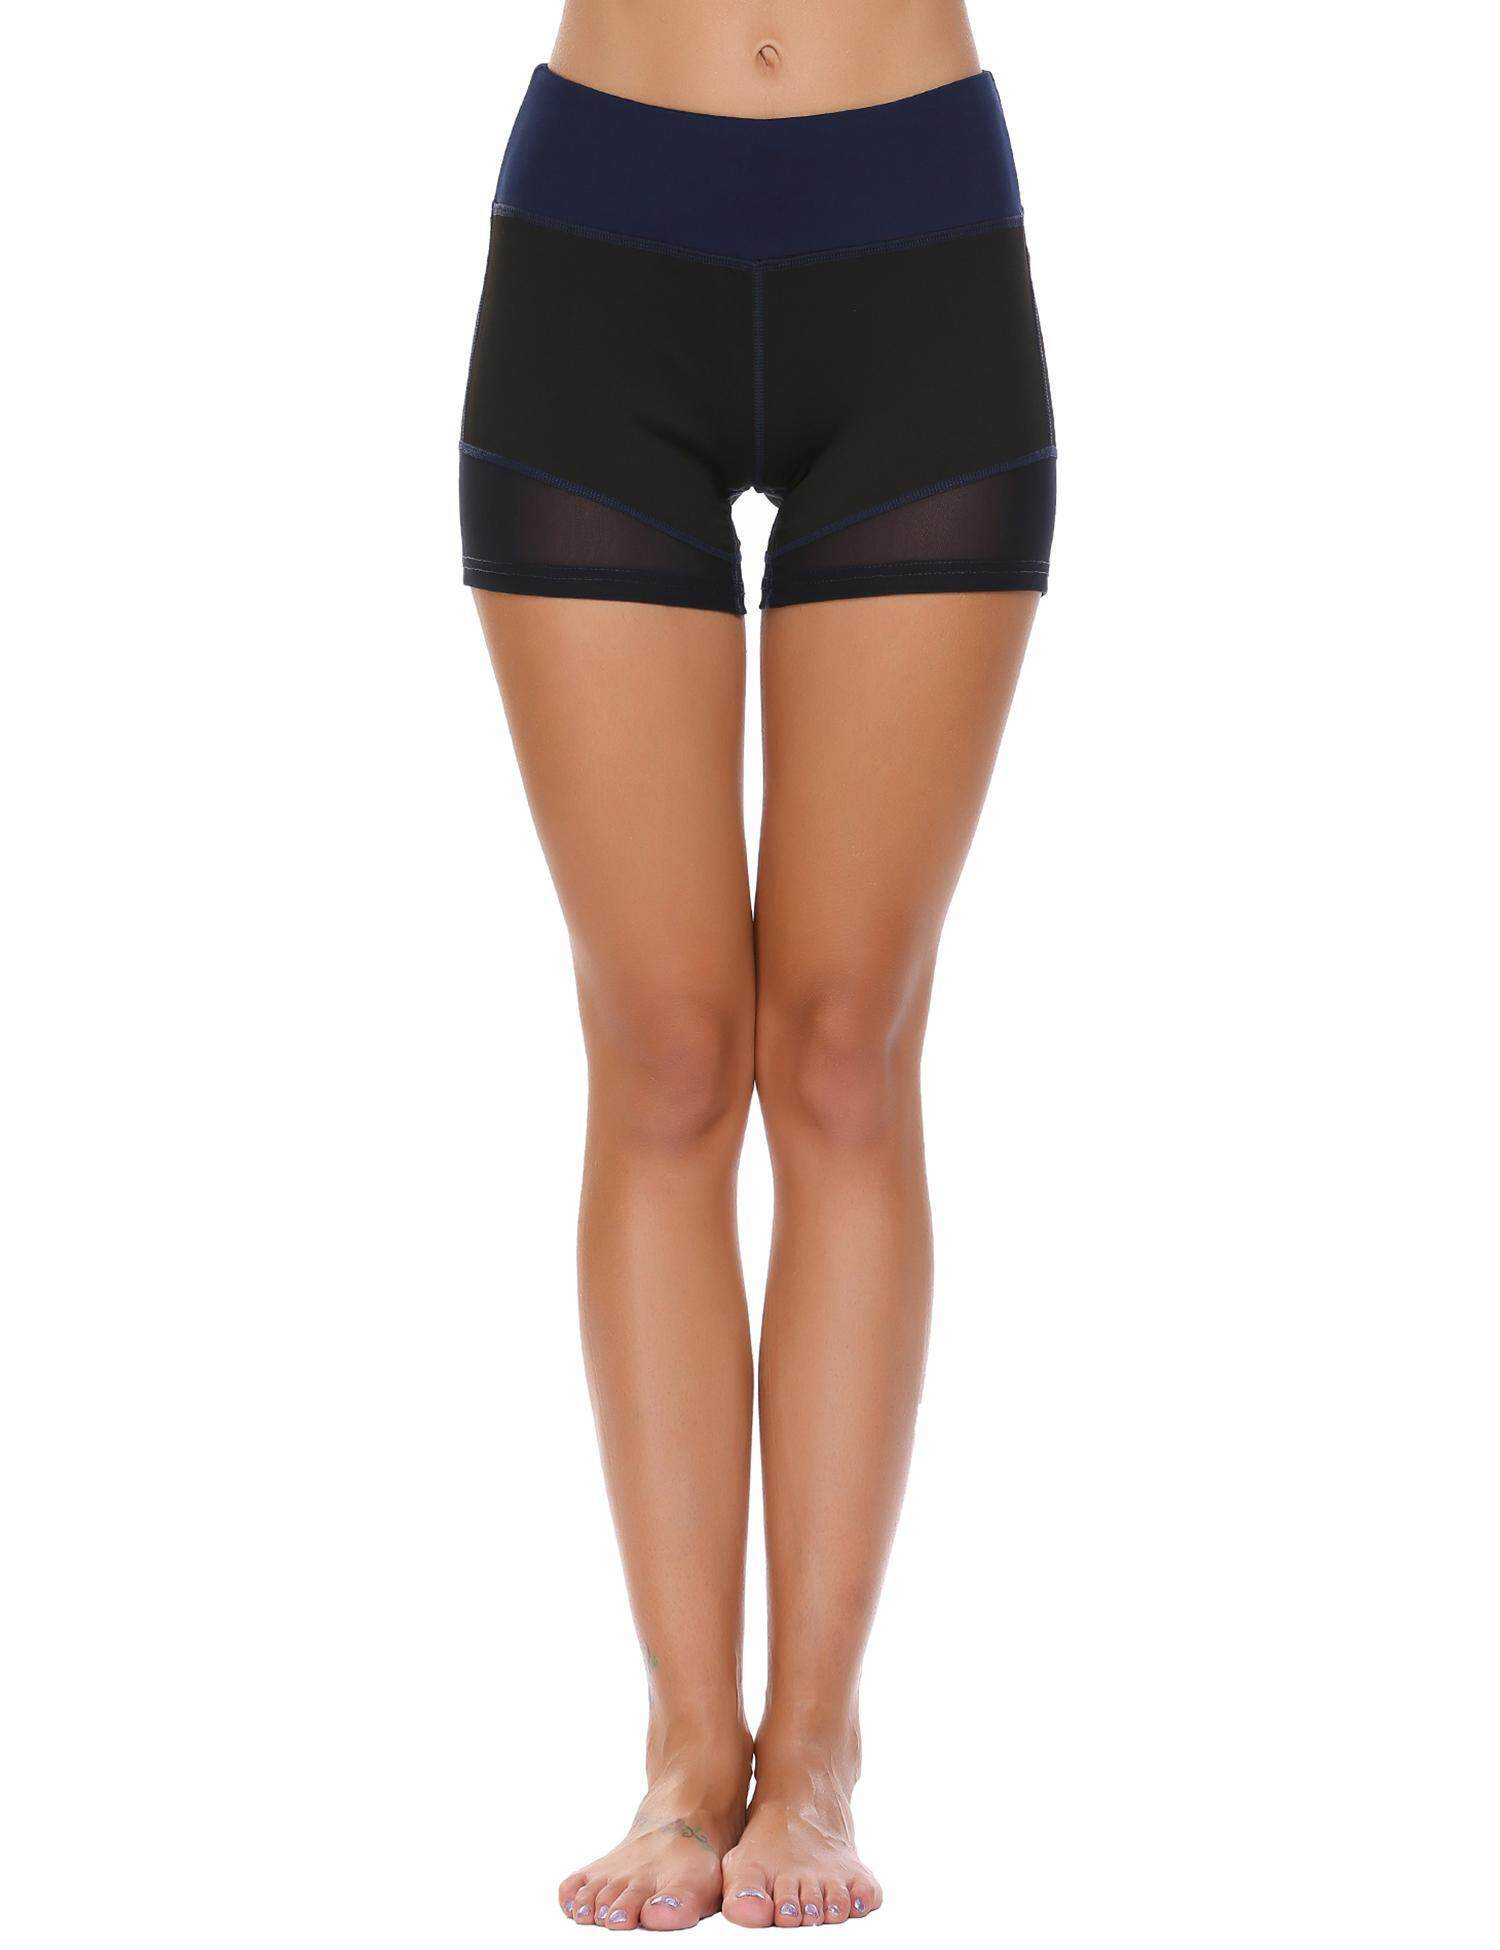 Price New Arrival Astar New Women Fashion Slim Mid Waisted Waistband Swimsuit Bottom Elastic Casual Sports Shorts Swimming Panty Intl China